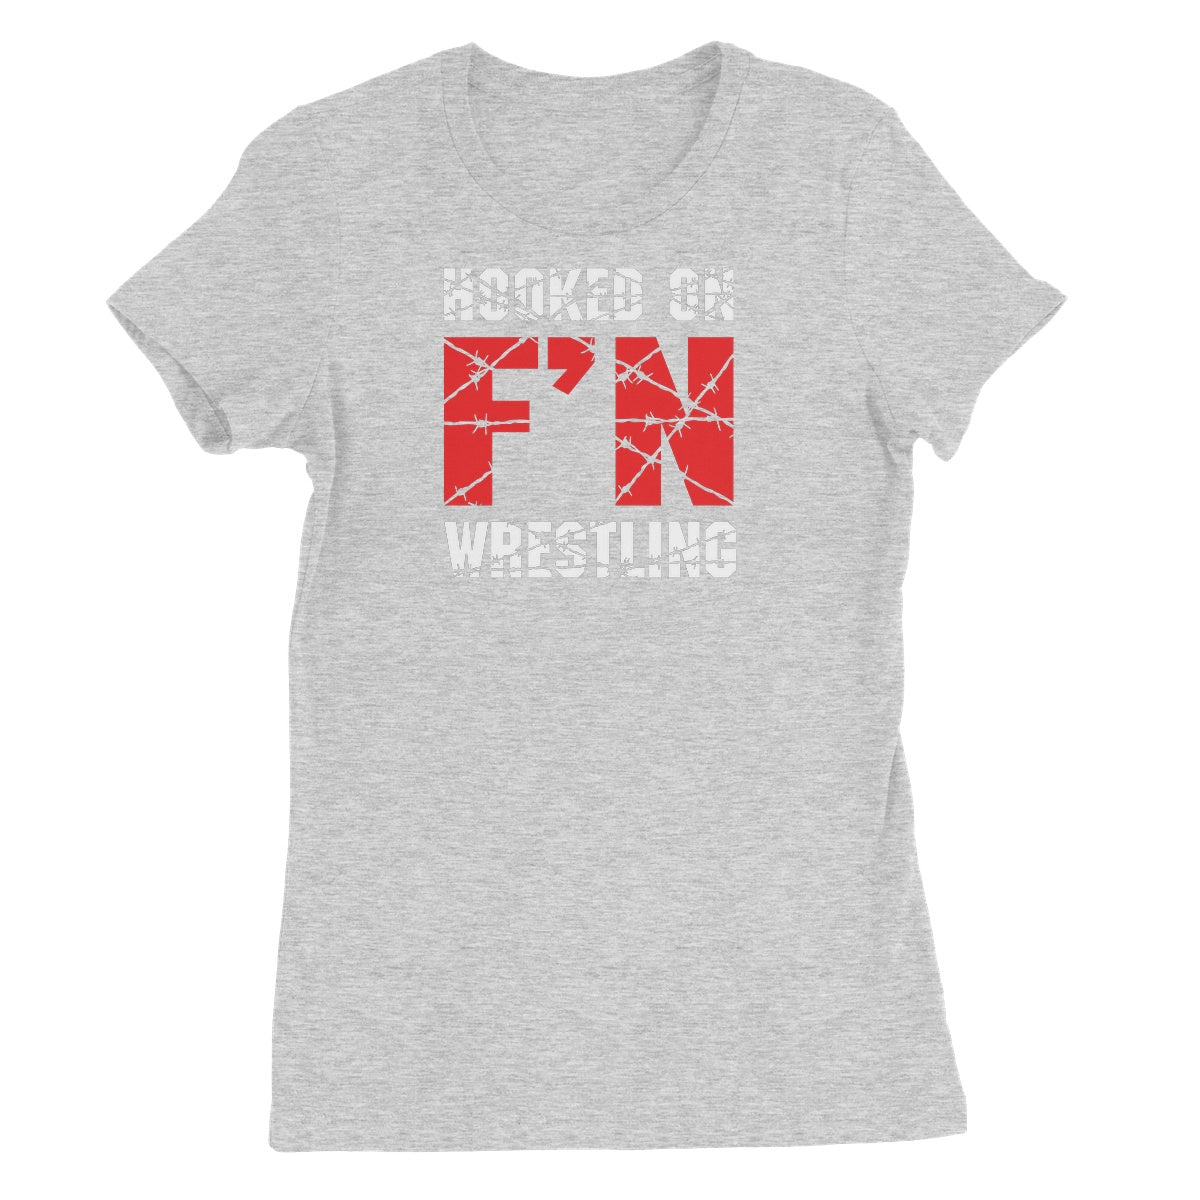 H.O.W Extreme Women's Short Sleeve T-Shirt